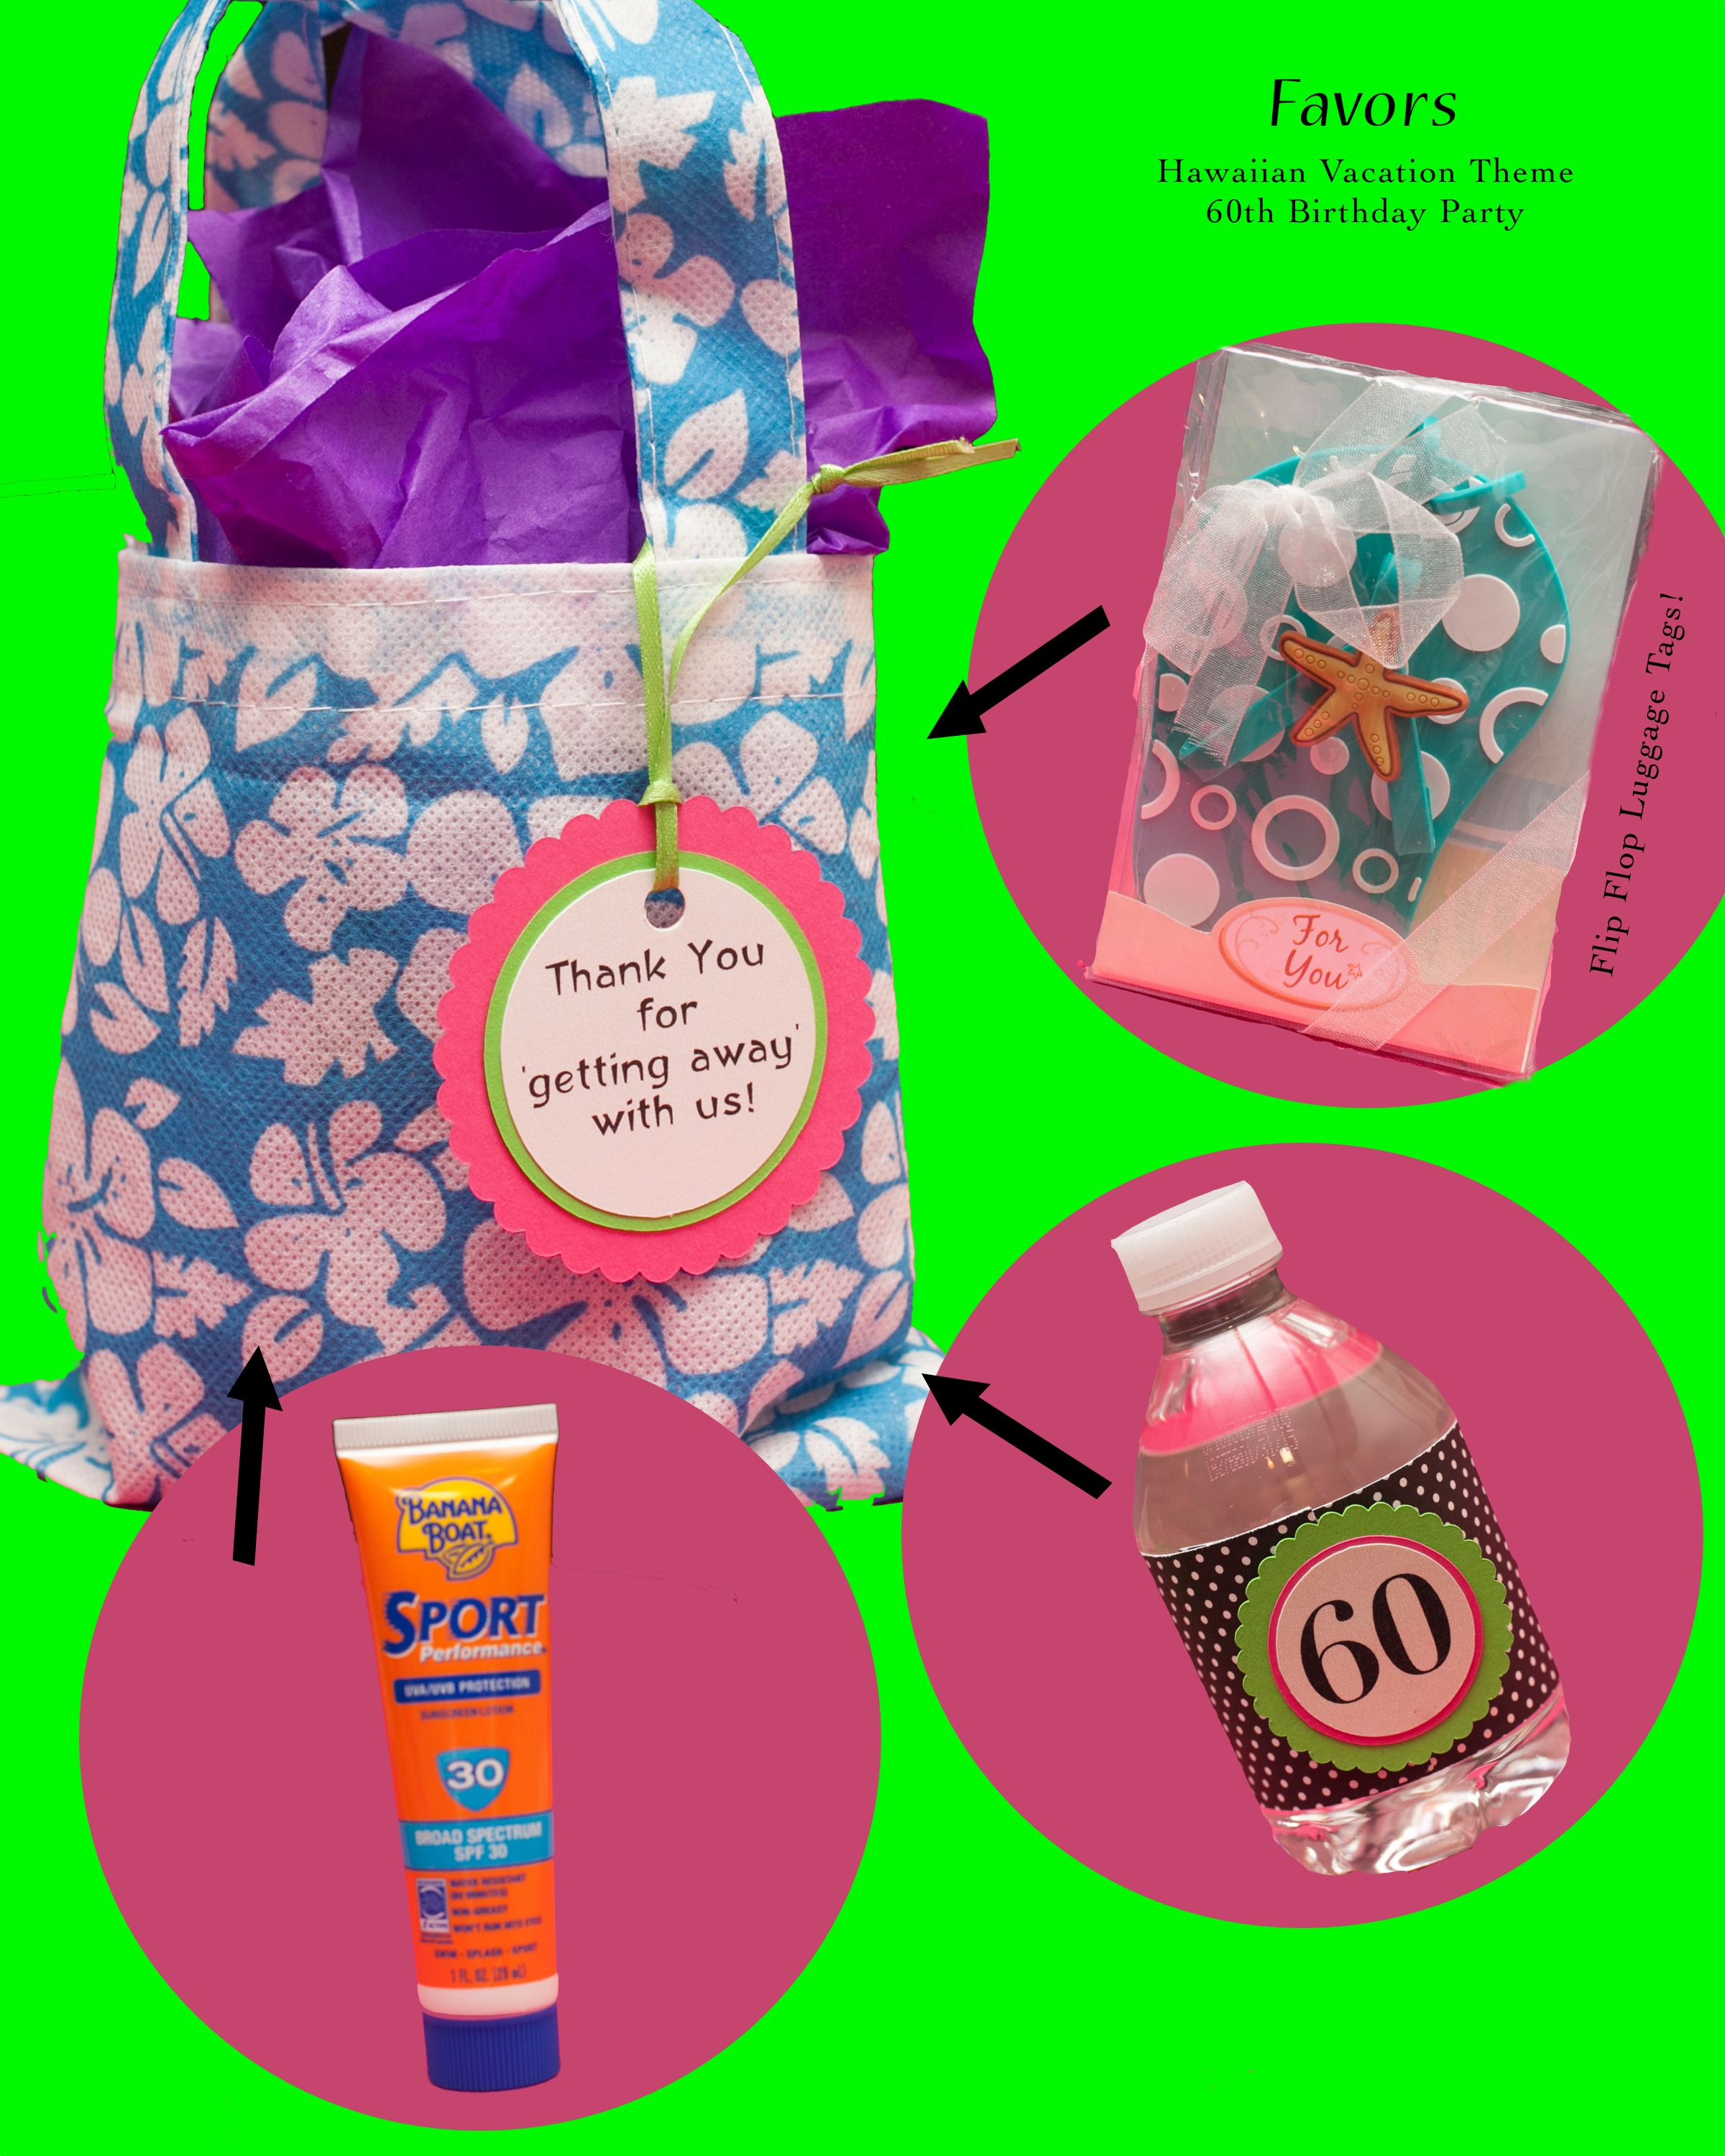 Mom\'s 60th Birthday Hawaiian Vacation Theme Favors included ...